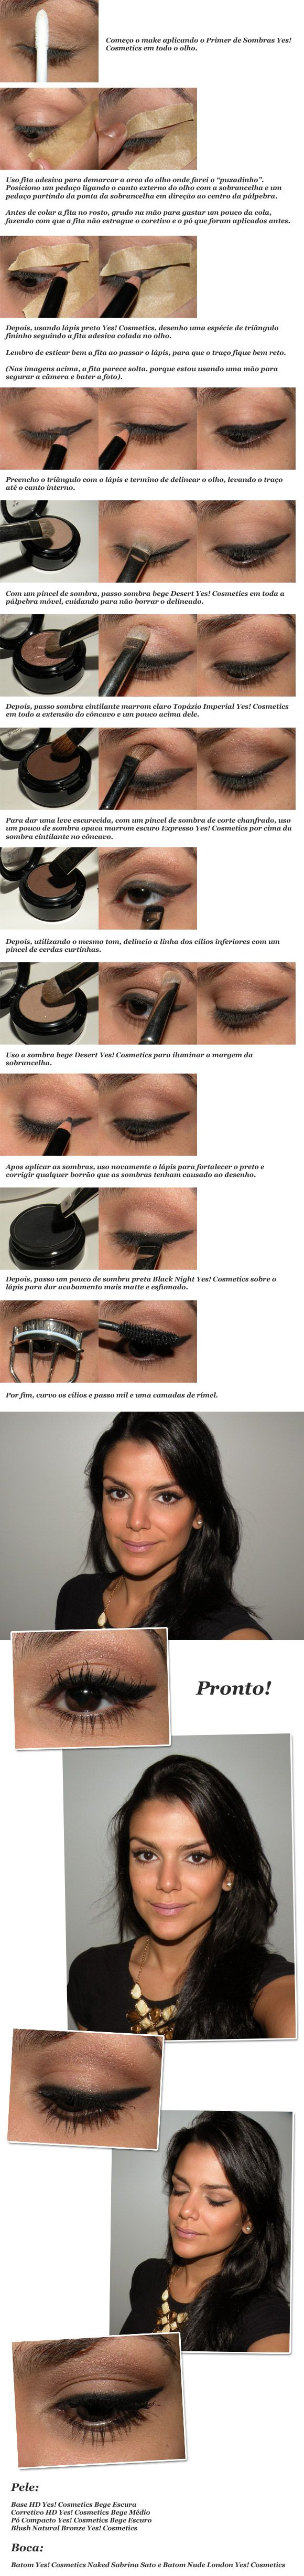 I can't understand the writing but the photos are pretty clear on how to achieve the results. A pretty ingenious way to get your liner to match on both eyes!